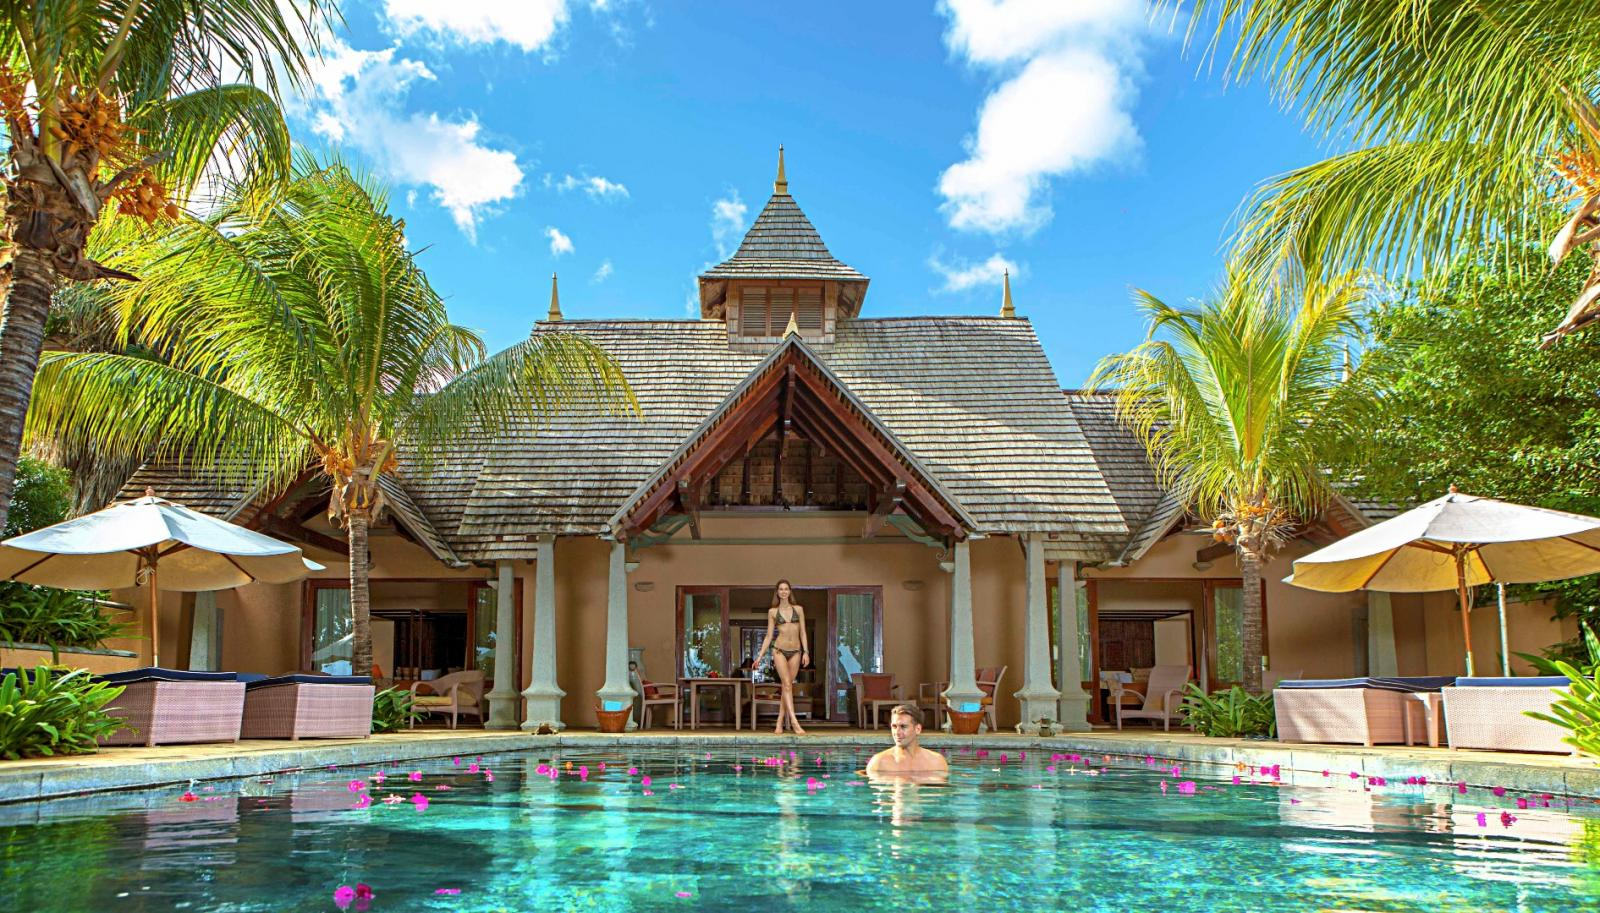 Tanztherapie: Foto vom Wellnesshotel Maradiva Villas Resort and Spa | Wellness Mauritius